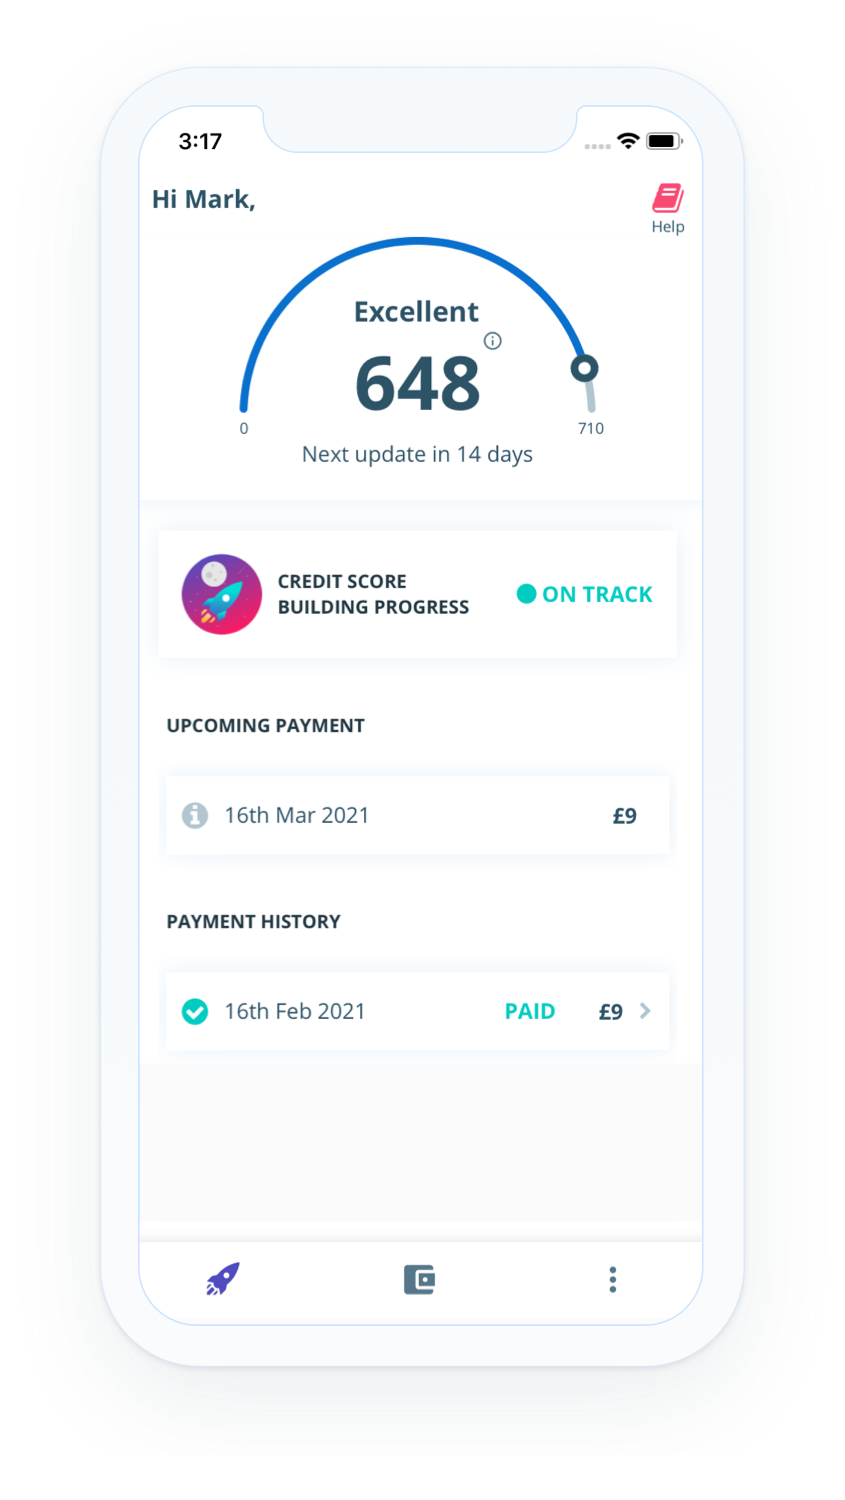 Screenshot of the homepage showing the personal finance management features of the credit building app Portify